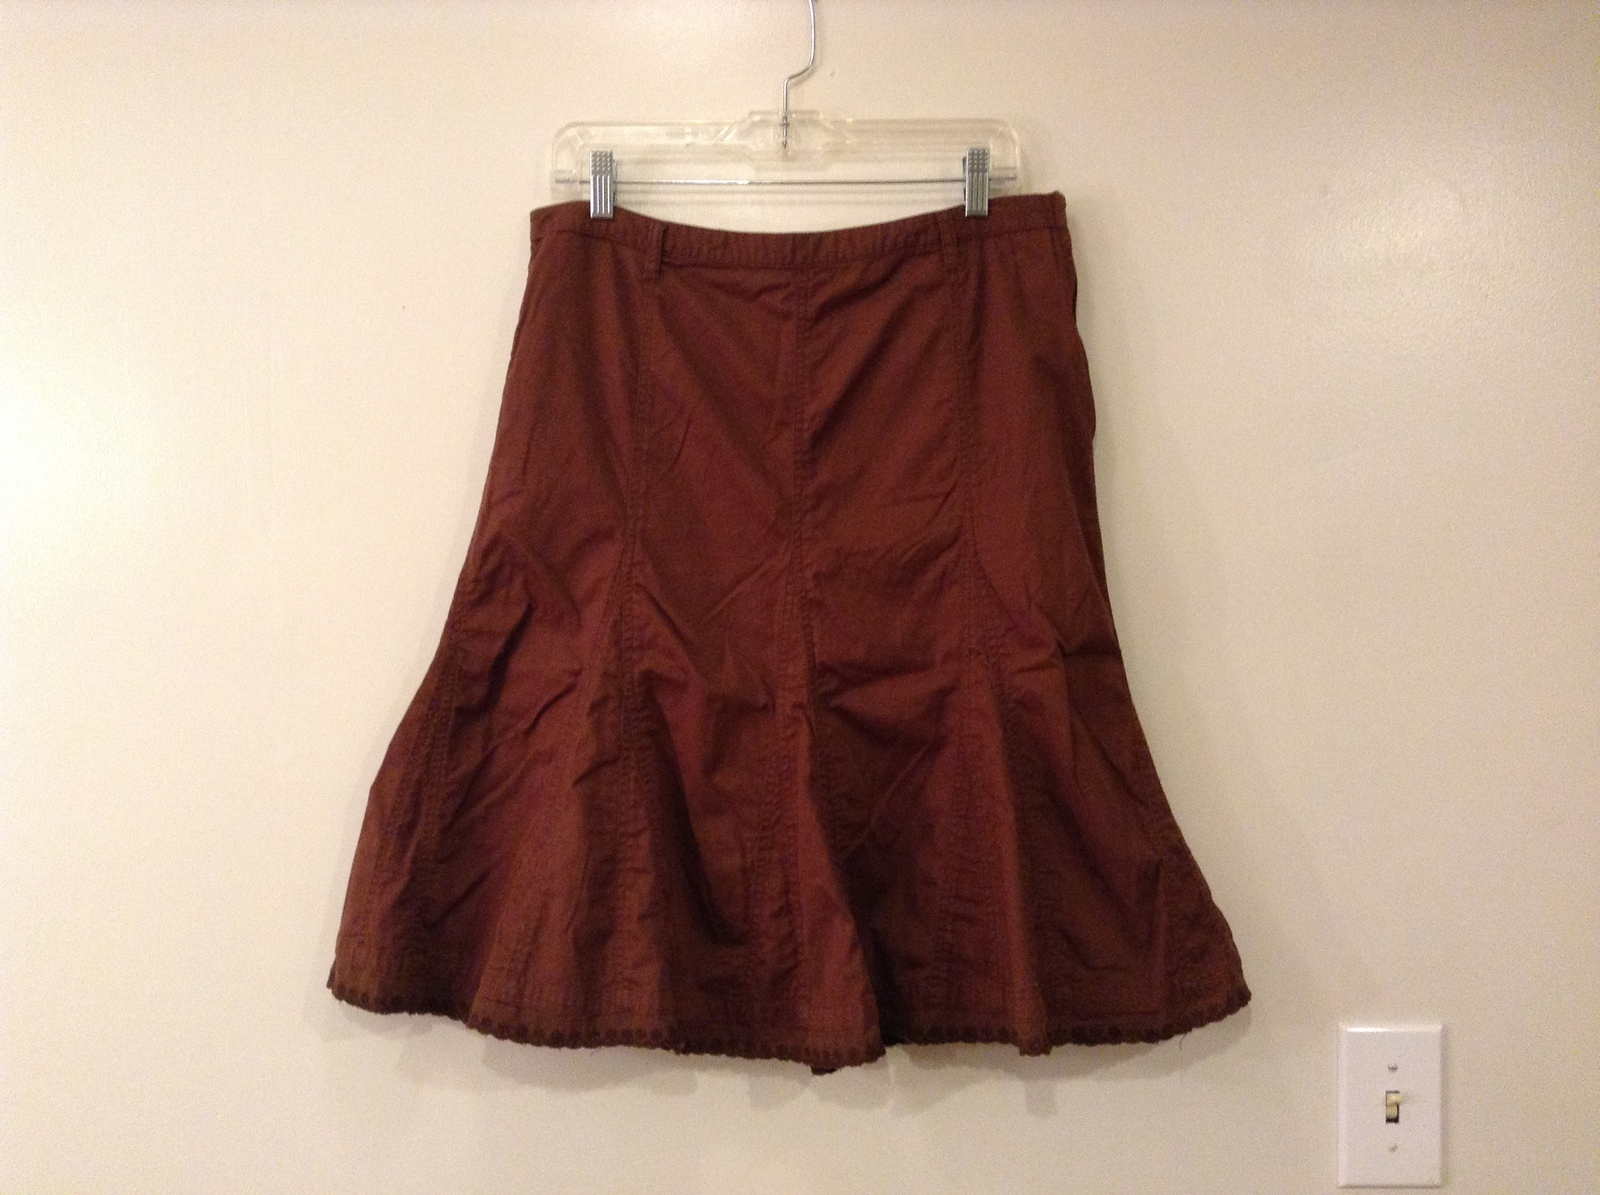 French Cuff Brown 100% Cotton Unlined A-Line Skirt, size 12 with embroidery lace